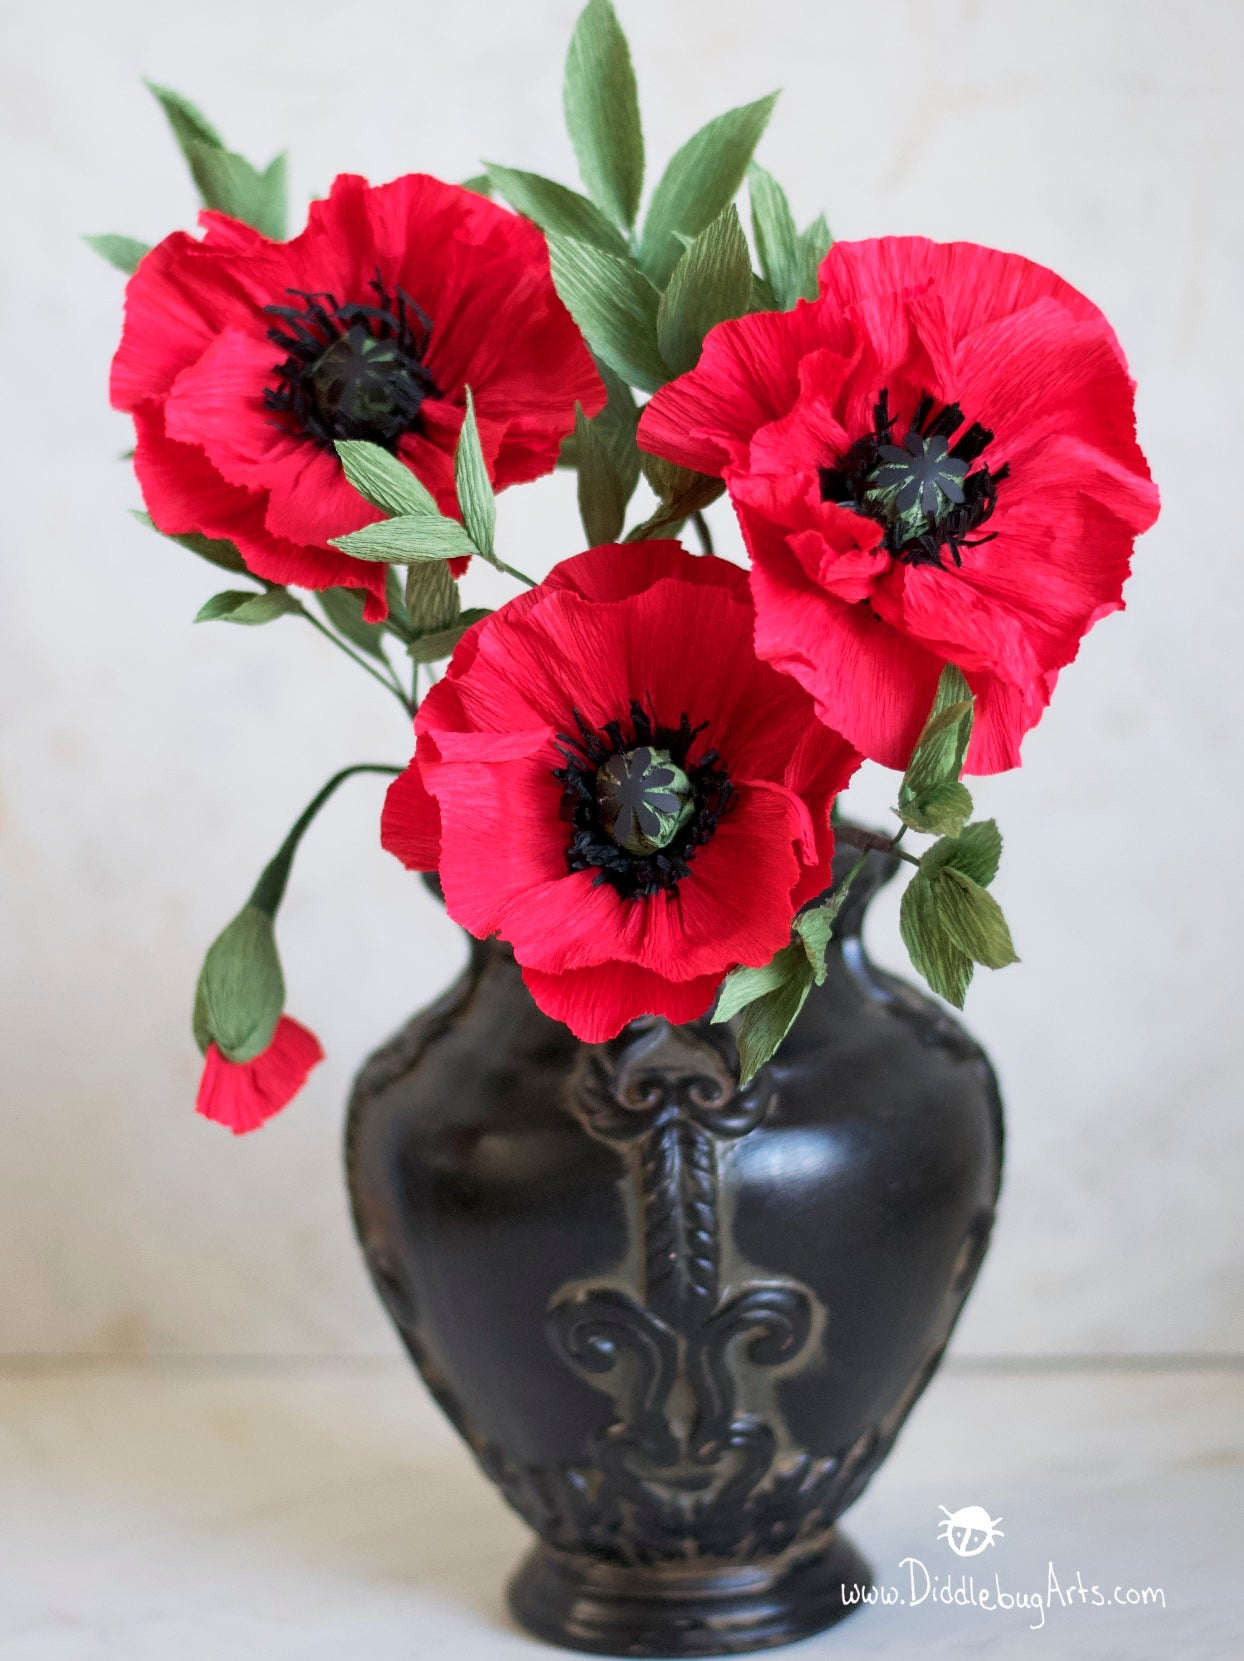 red crepe paper poppies in a vase